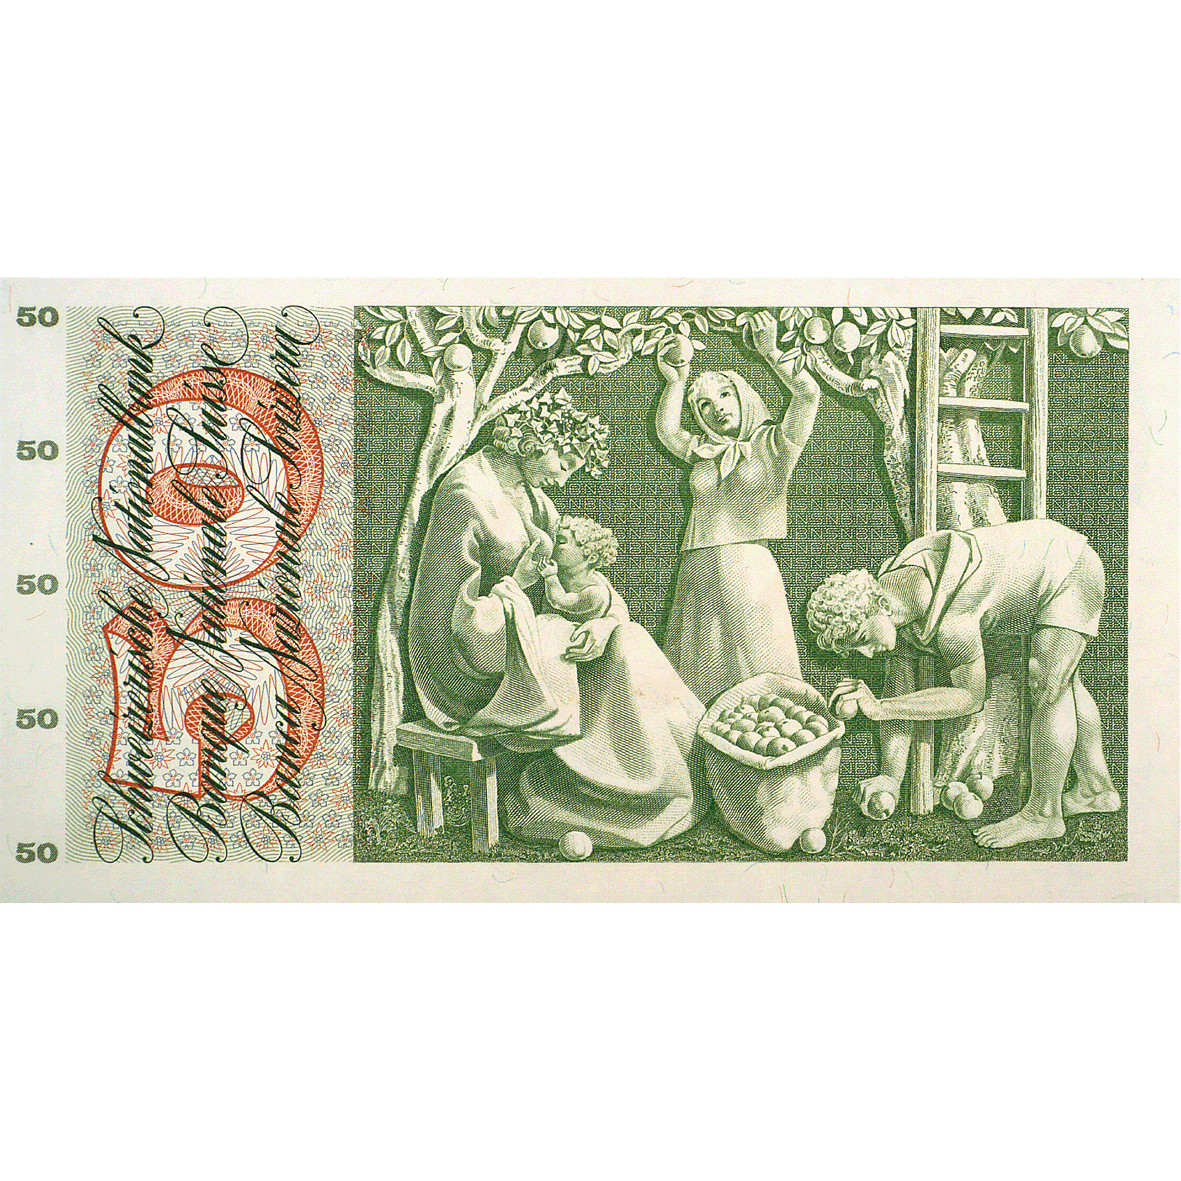 Swiss Confederation, 50 Francs (5th Banknote Series, in Circulation 1956-1980) (reverse)